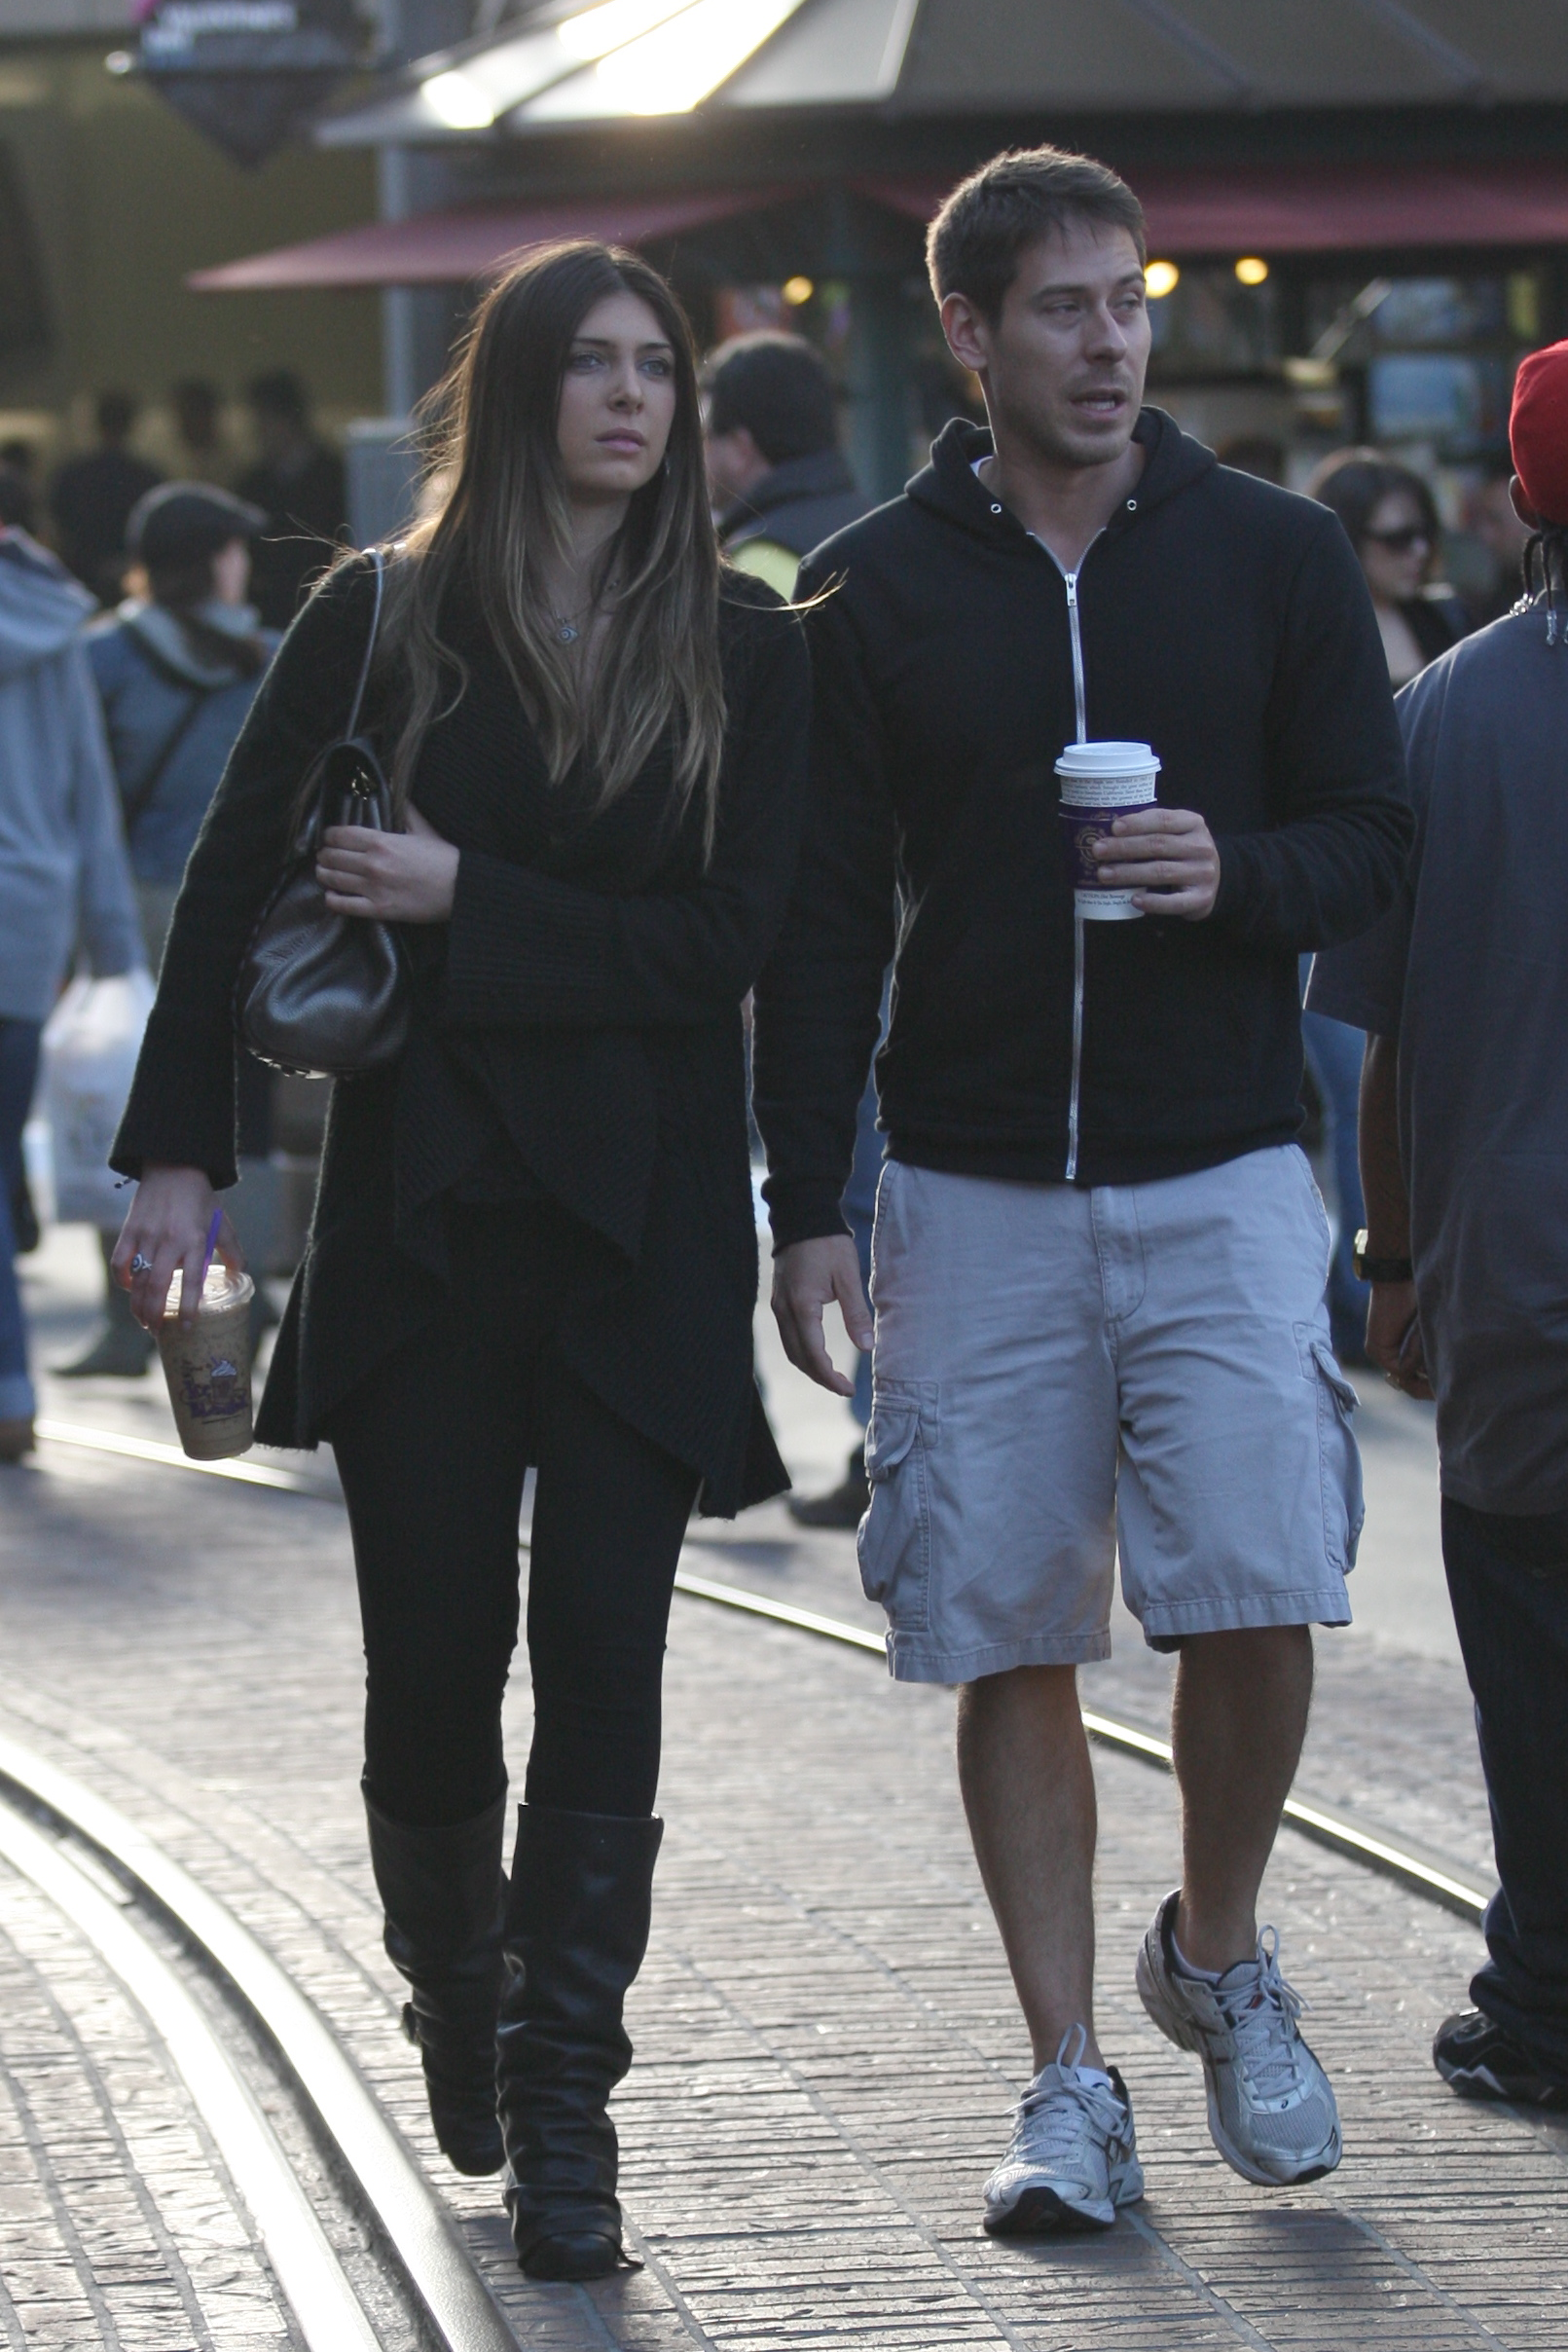 24900_celebrity-paradise.com-The_Elder-Brittny_Gastineau_2010-01-31_-_out_shopping_in_Hollywood_253_122_141lo.jpg